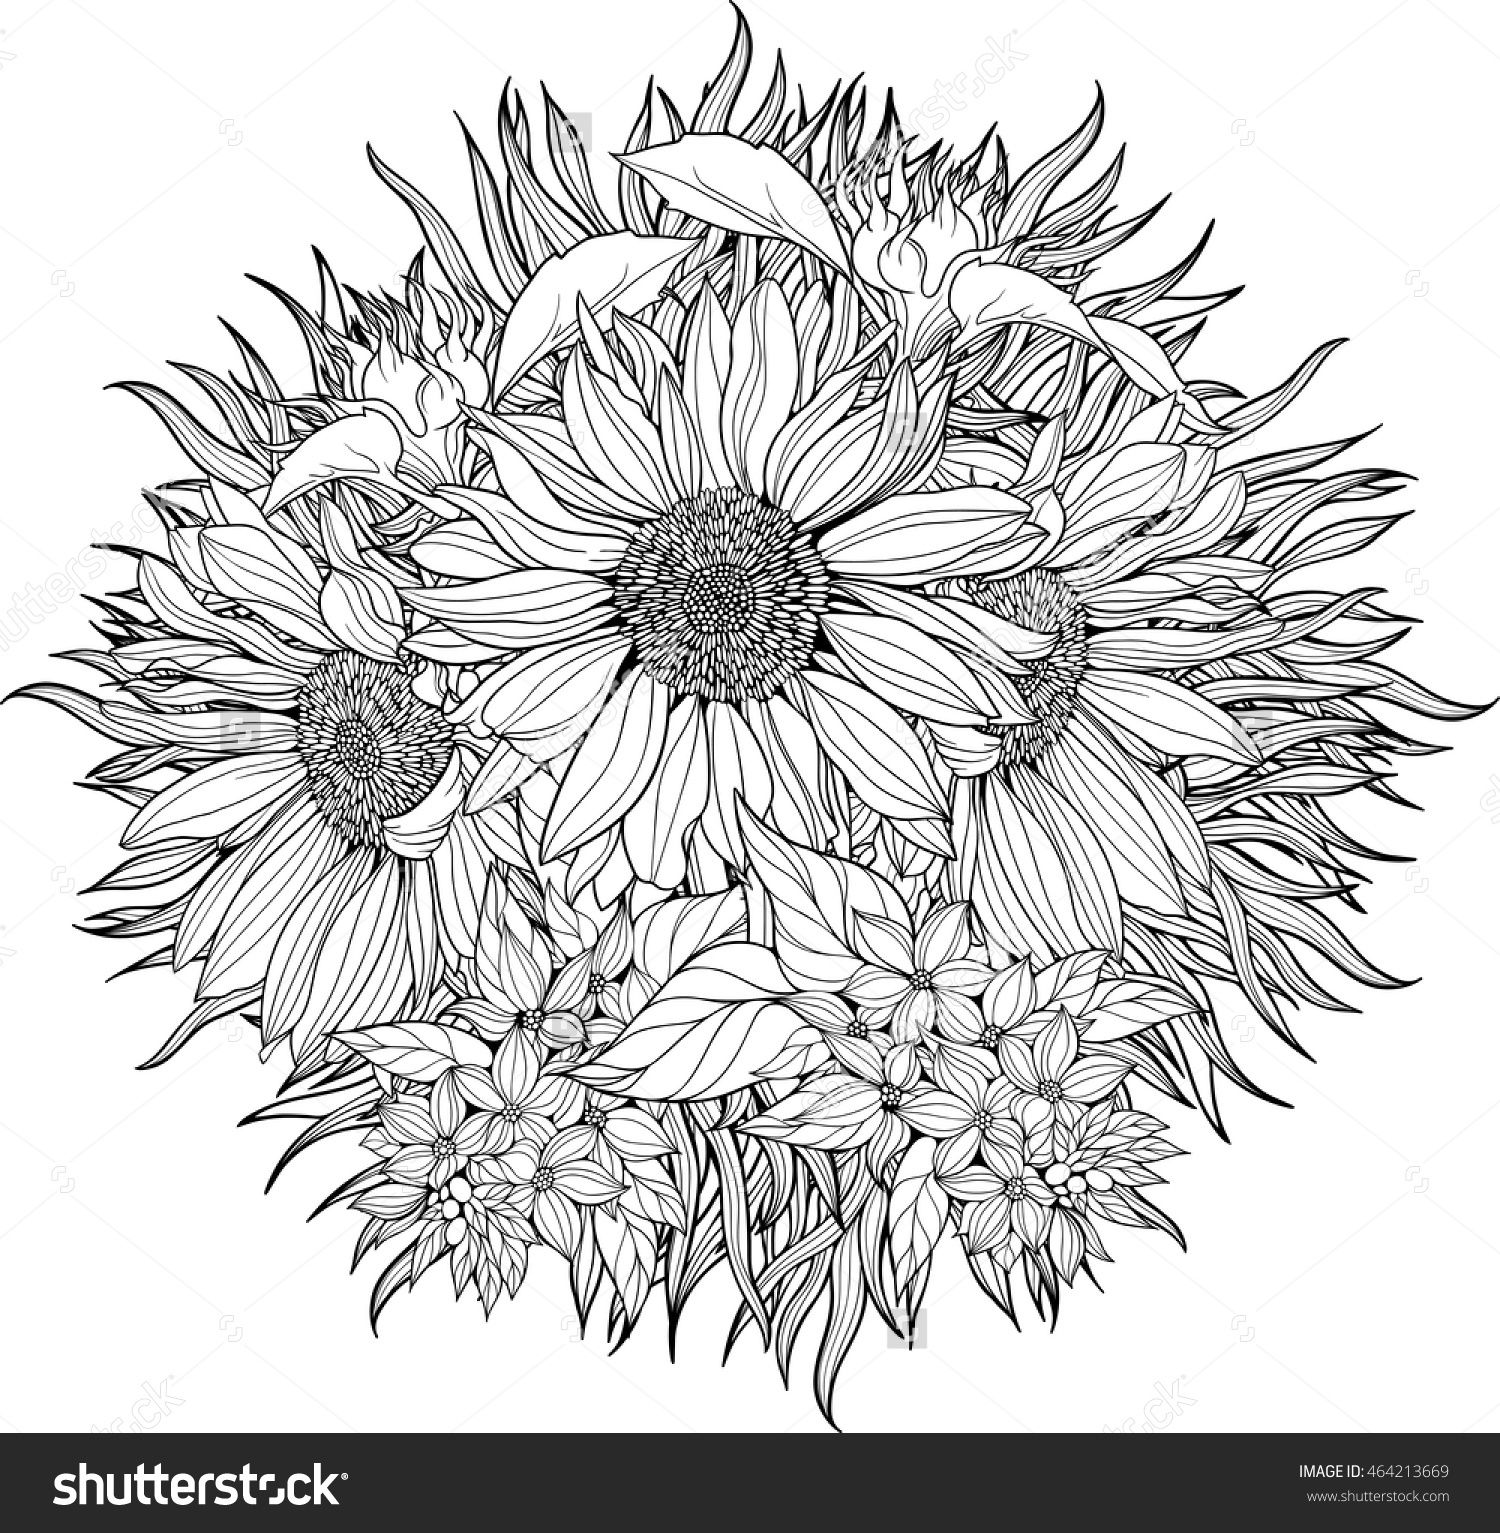 Close Up View Of Bunch Of Sunflowers Coloring Page Sunflower